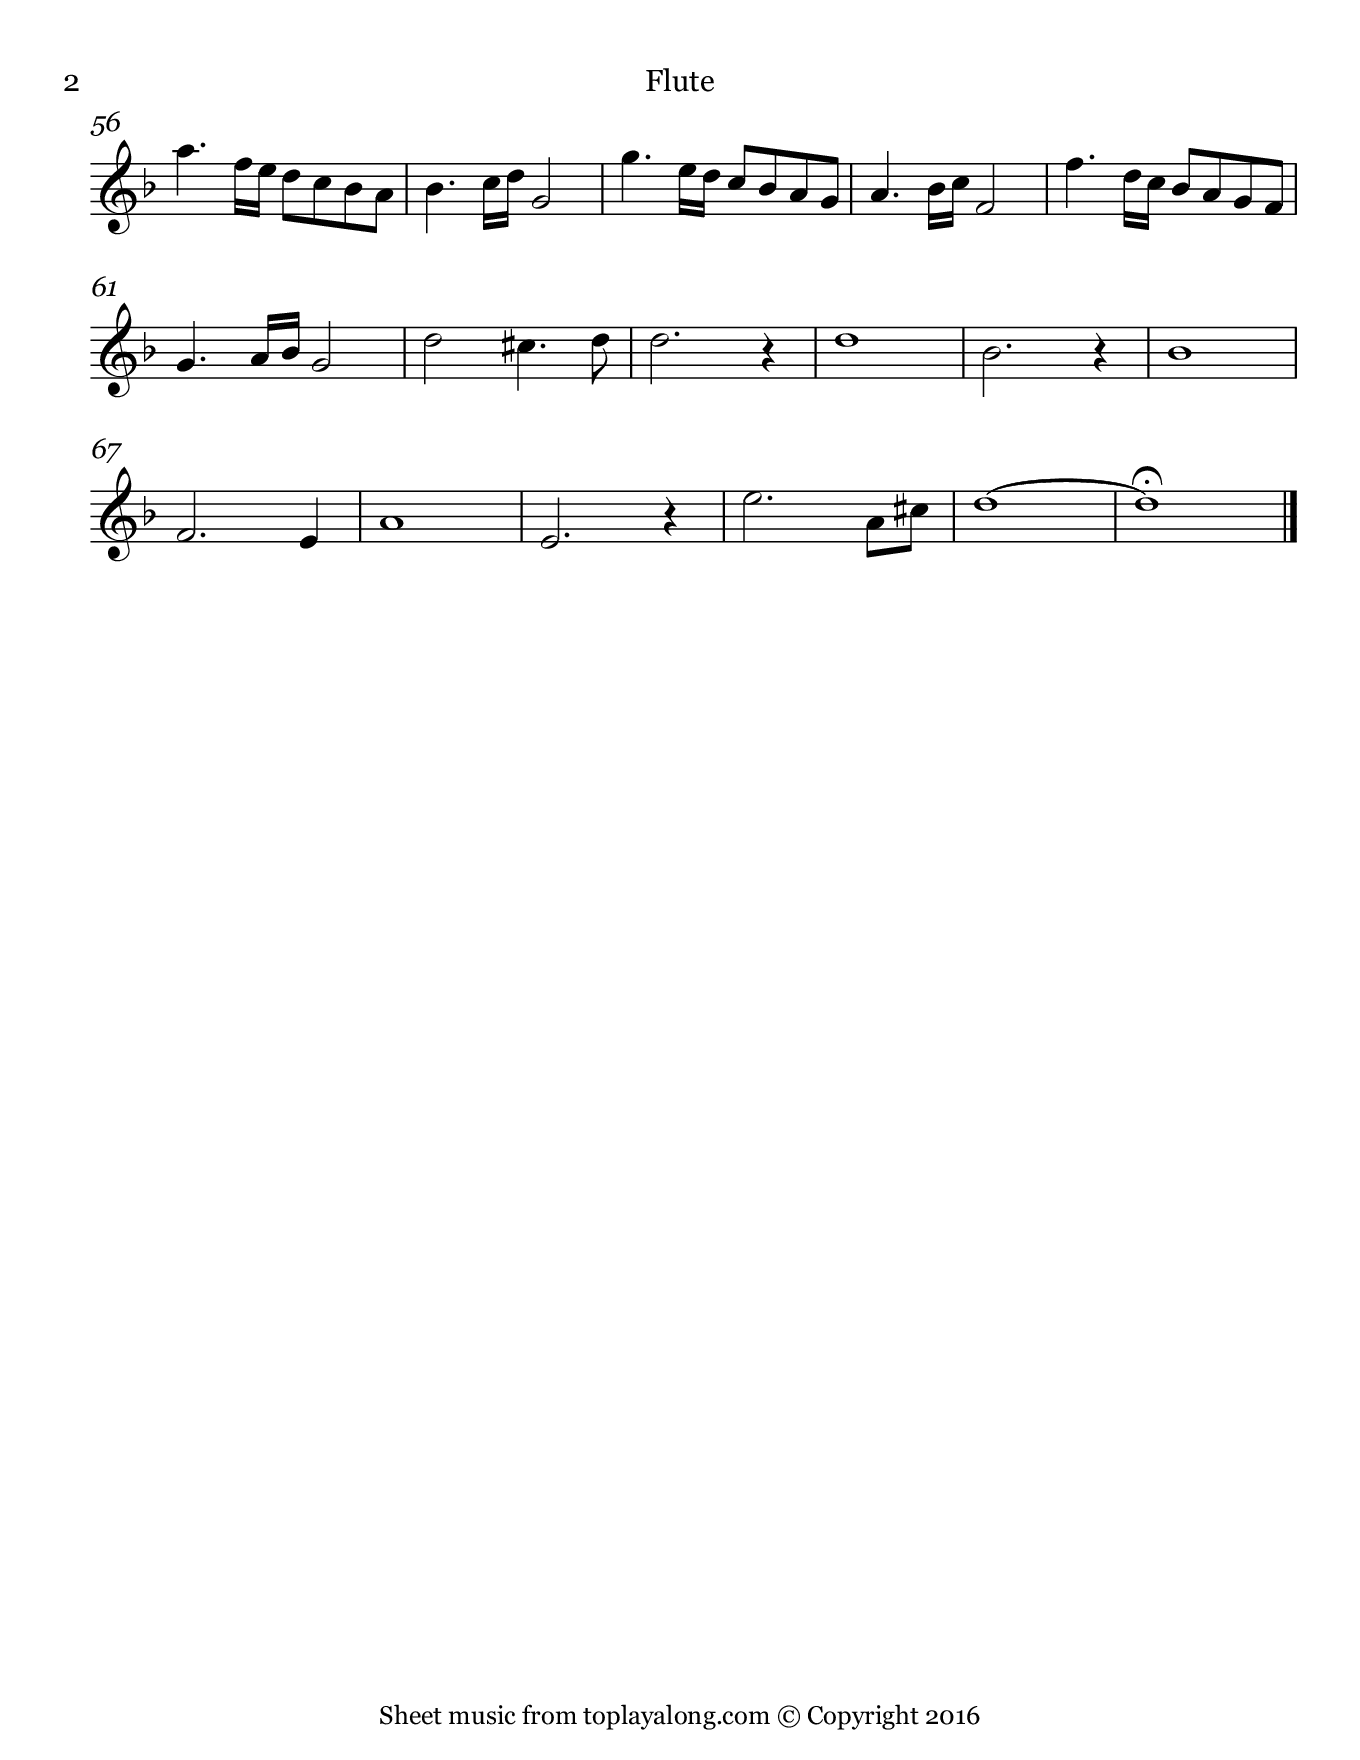 Ave Maria by Vavilov. Sheet music for Flute, page 2.